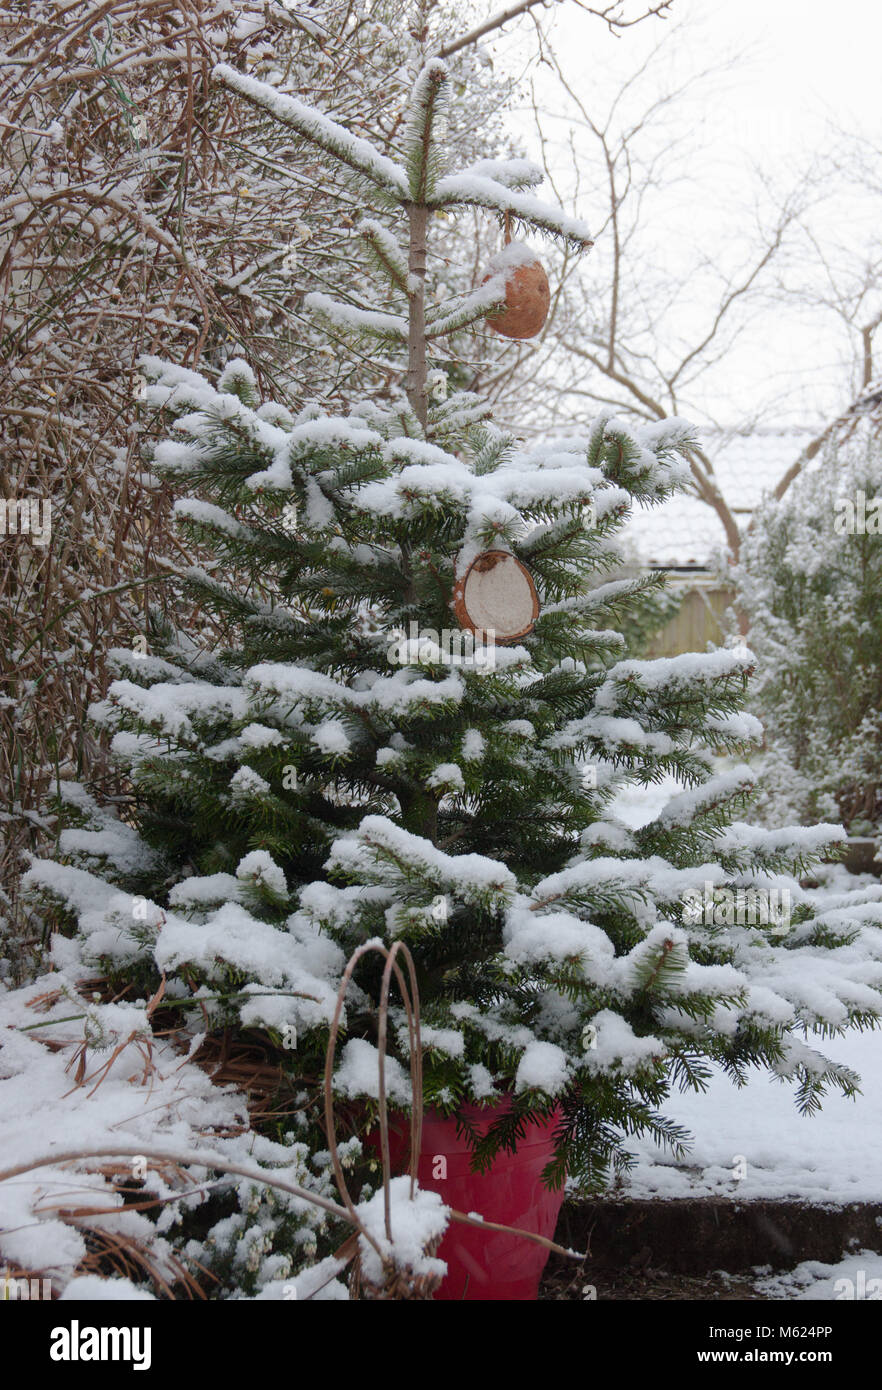 Christmas tree (Nordmann fir) covered in snow with bird feeders in ...